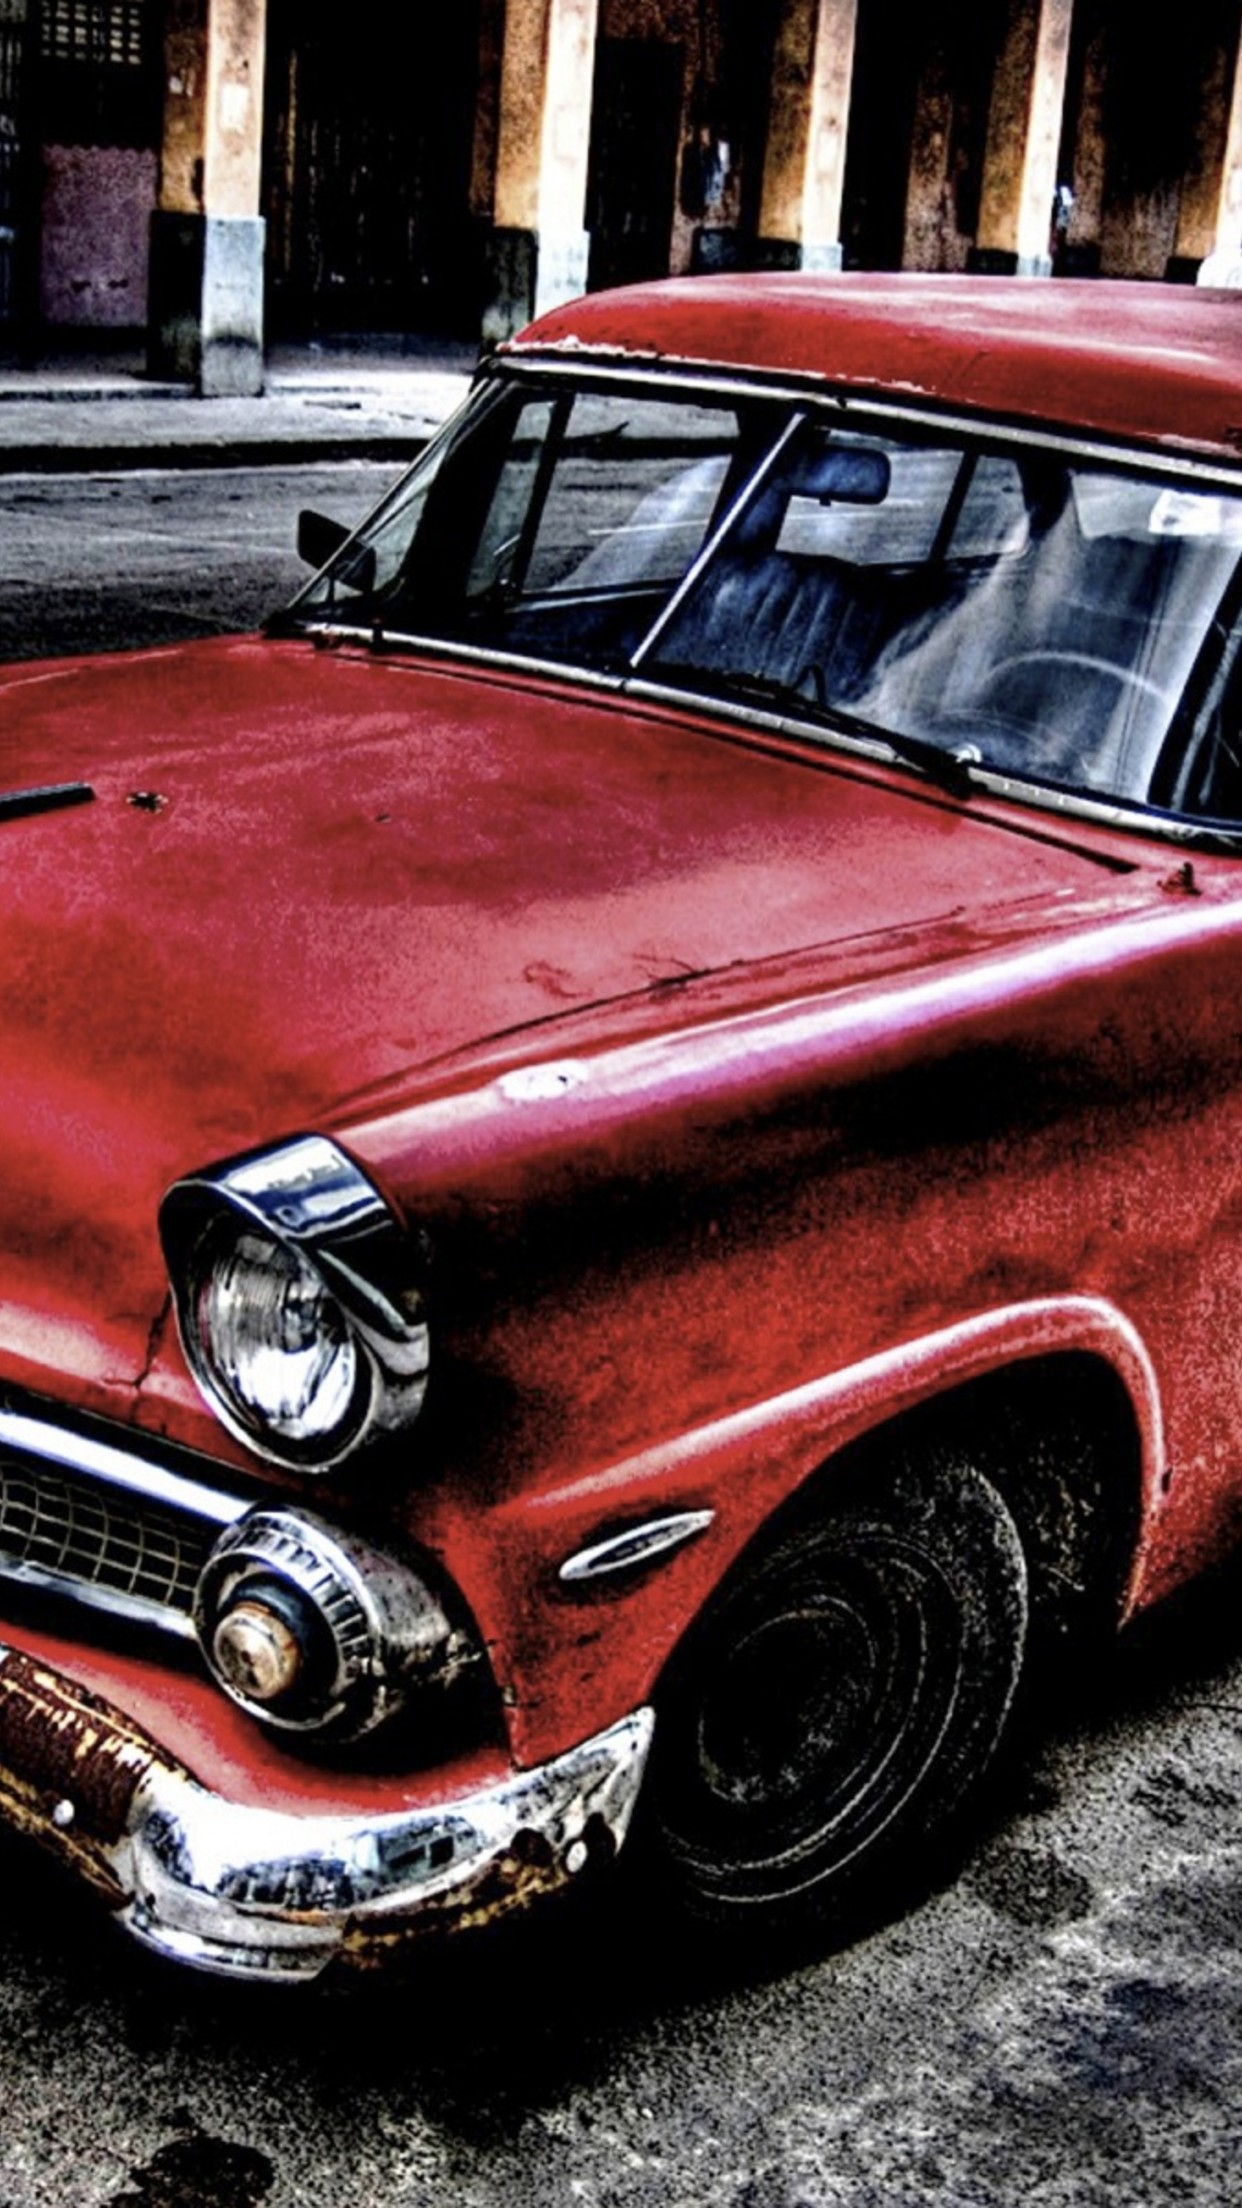 Old Car Red Wallpaper For Iphone X 8 7 6 Free Download On